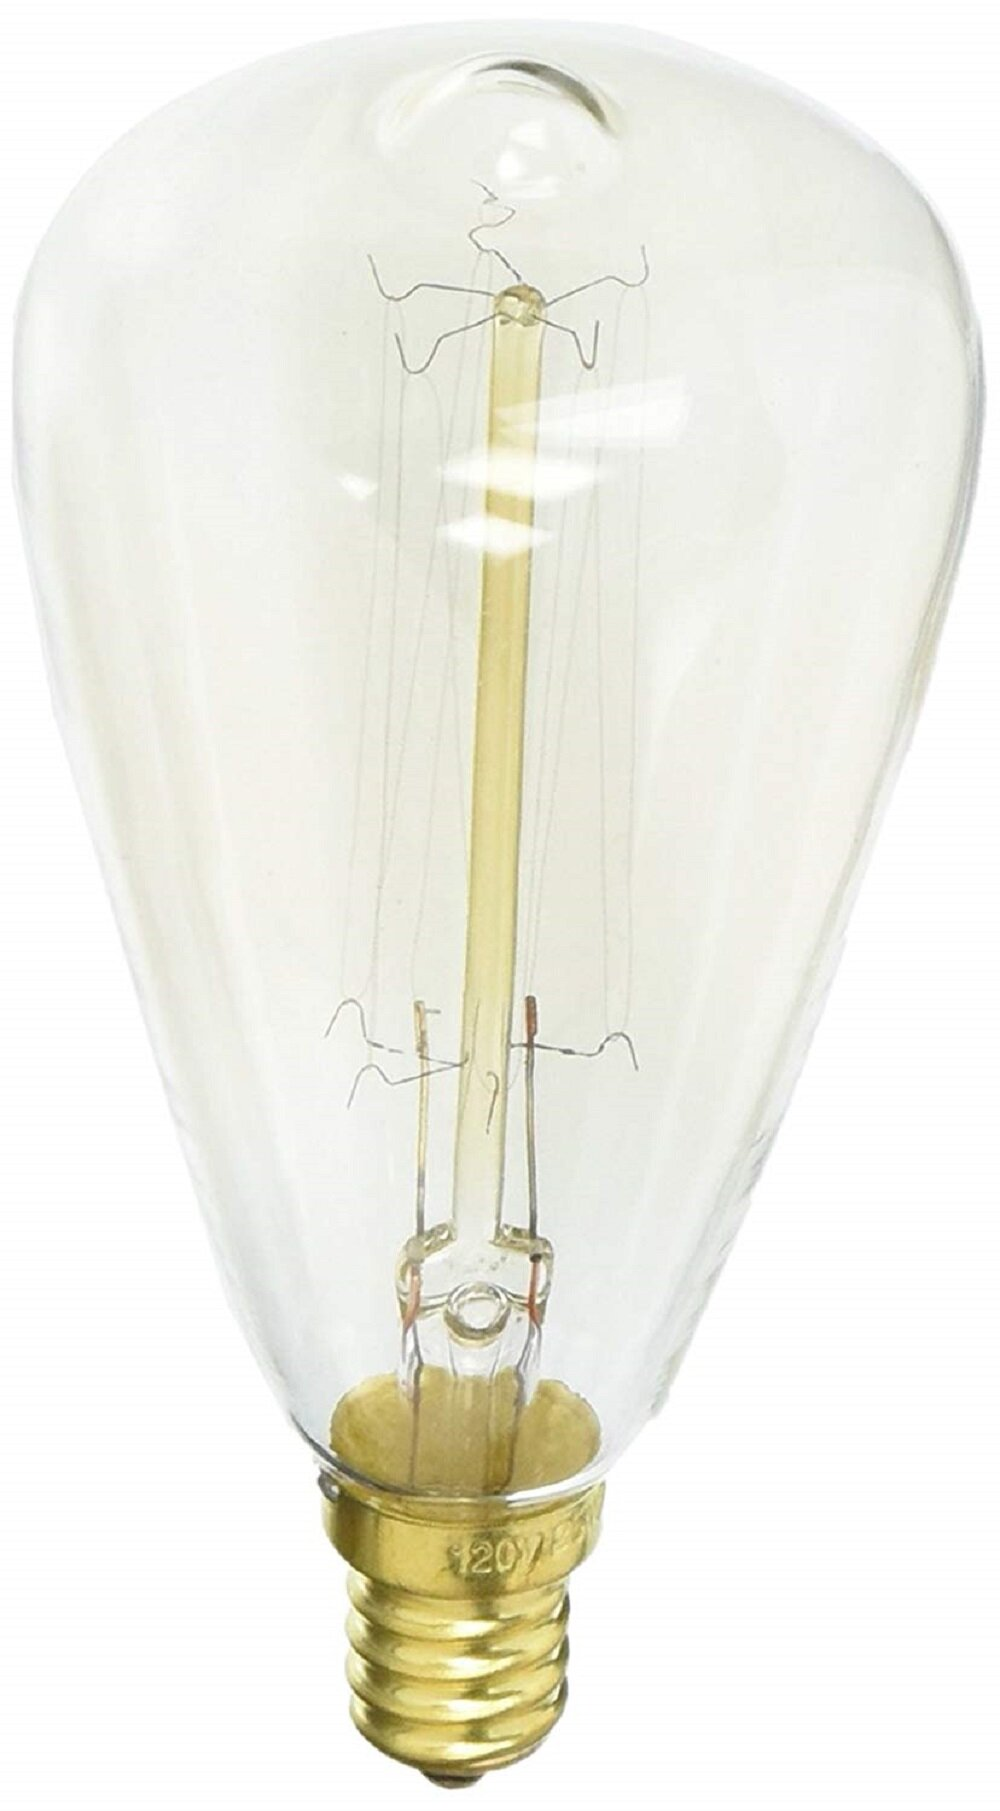 Urbanest 40 Watt St58 Incandescent Dimmable Light Bulb Warm White 2700k E12 Candelabra Base Wayfair